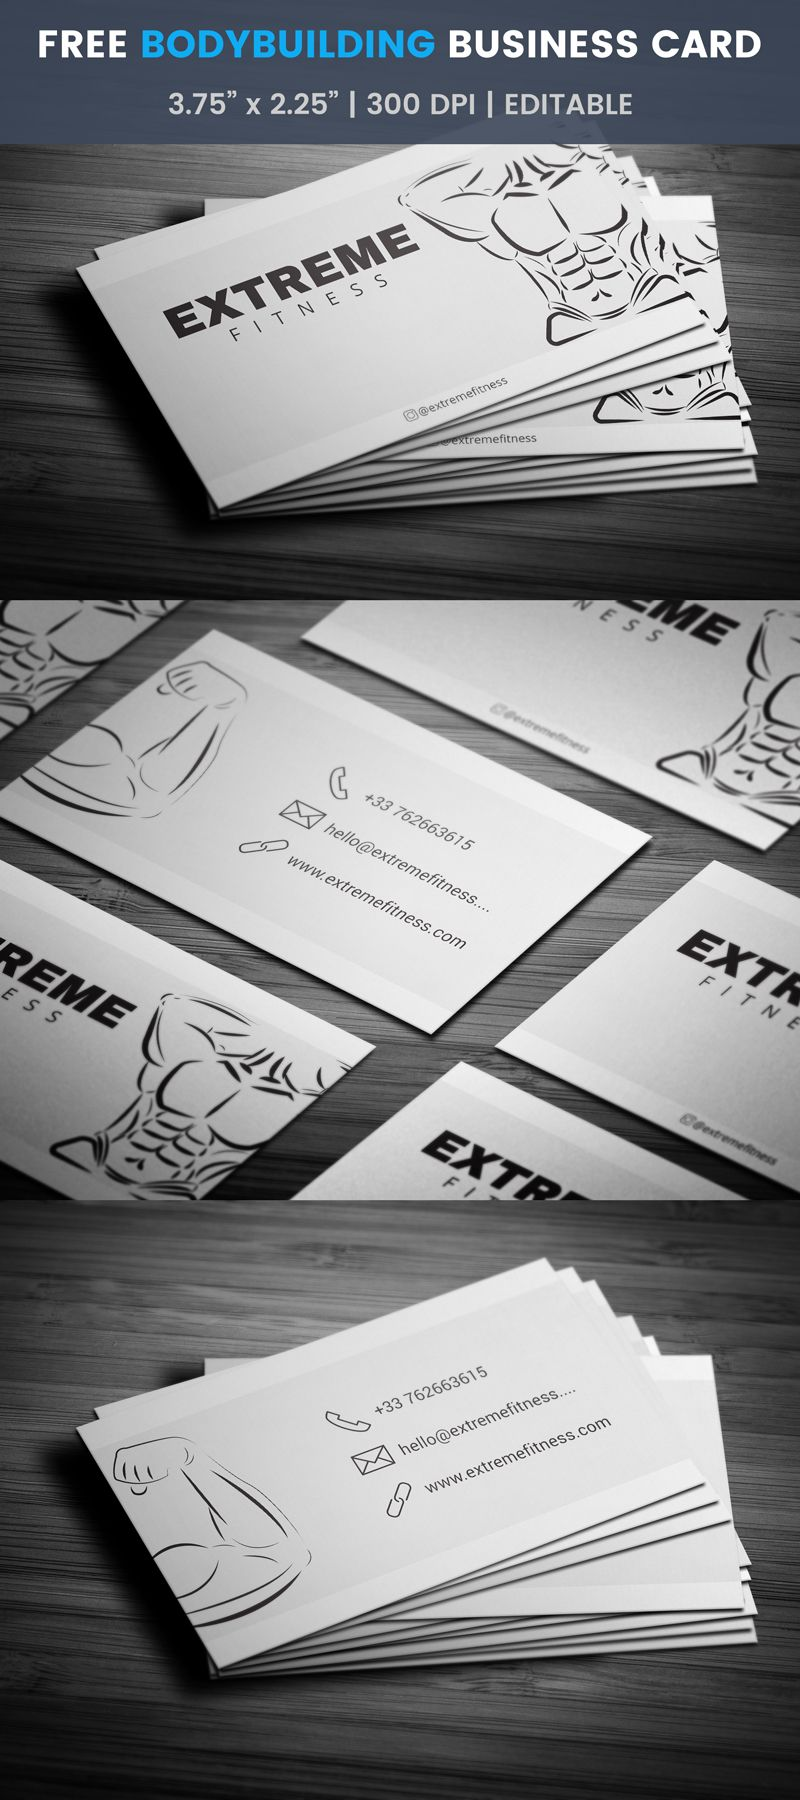 Bodybuilding - Fitness Business Card Template #lift #workout | Free ...